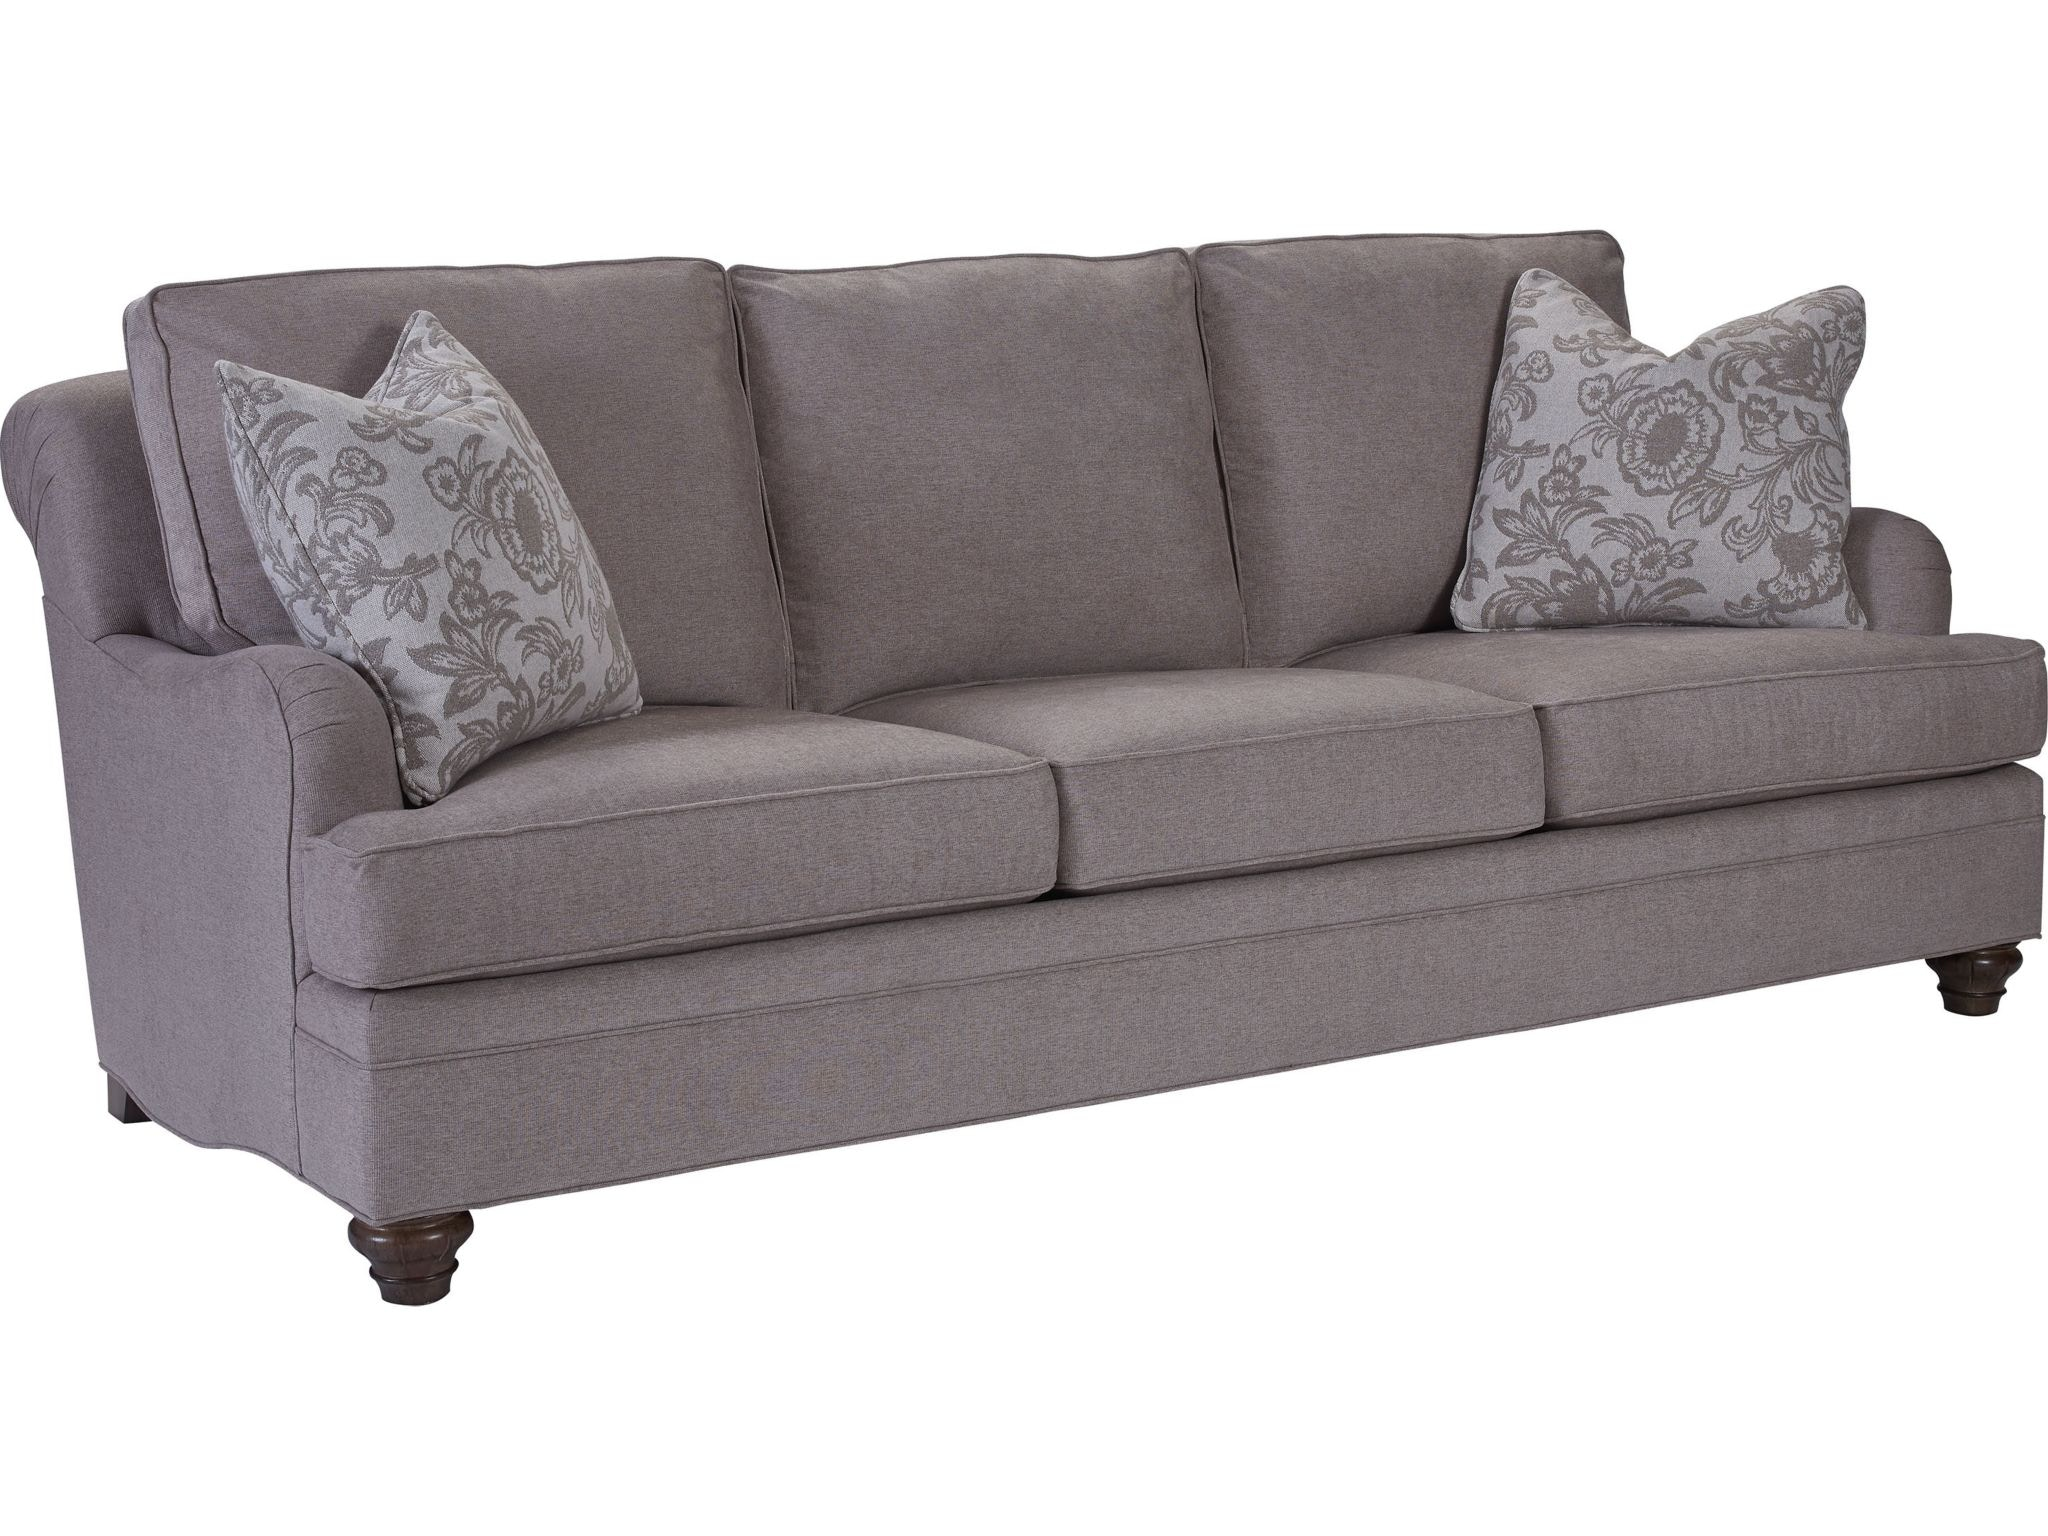 Thomasville Living Room Tarren Sofa 2530 11   Ennis Fine Furniture   Boise,  ID, ...